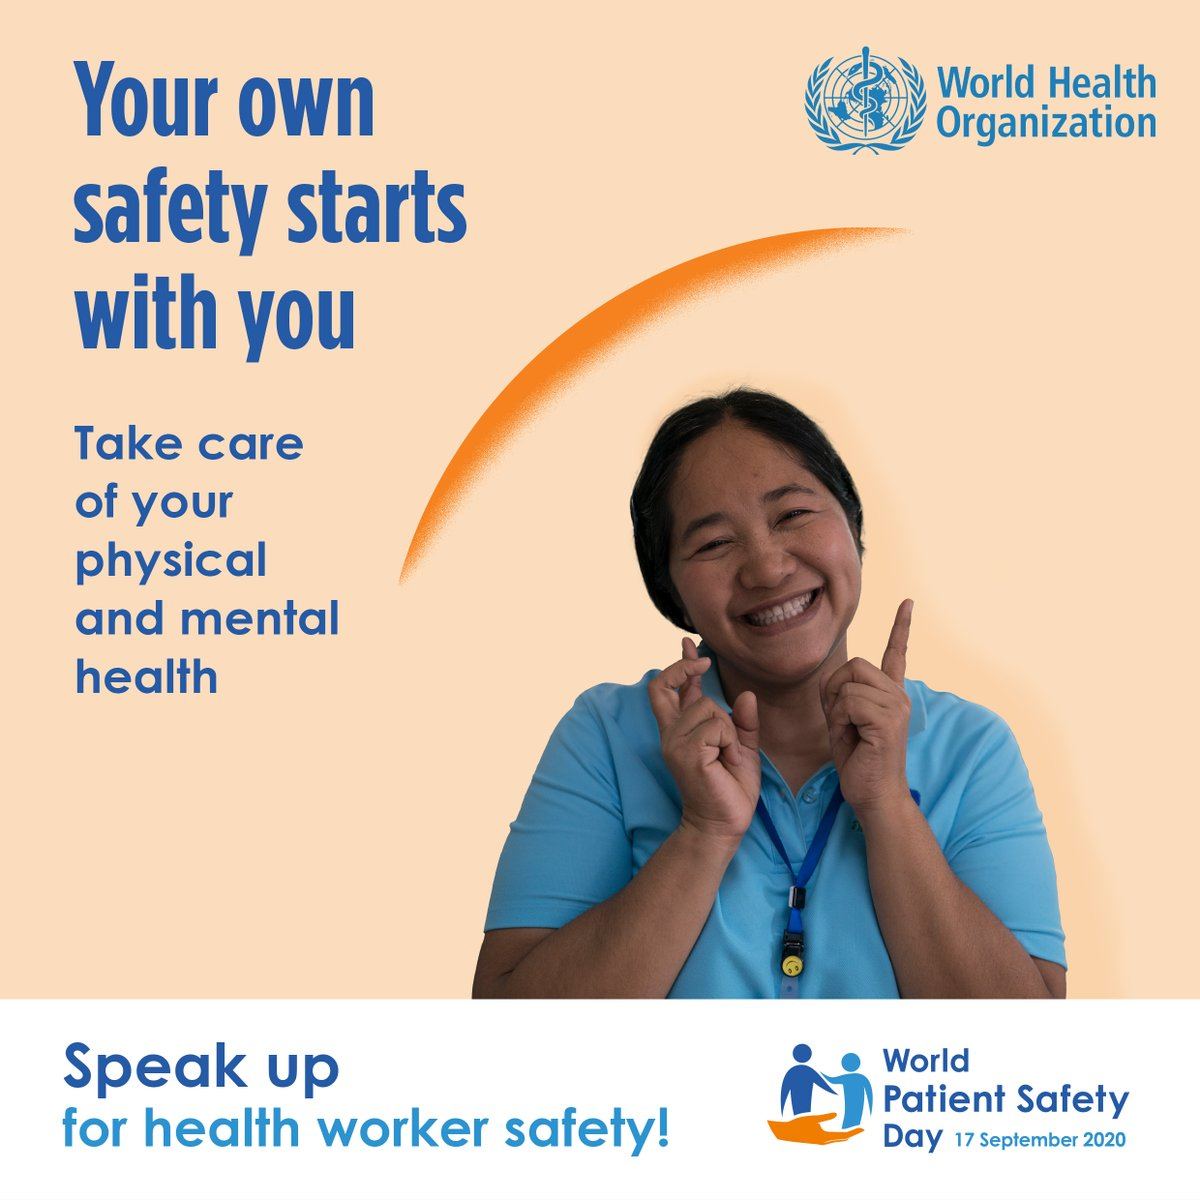 Today is #WorldPatientSafetyDay!   To help us focus on what really matters to the communities we serve, we work towards our Quality Priorities:  ✅ Patient Safety  ✅ Clinical Effectiveness  ✅ Patient Experience  ▶ https://t.co/NtStrEMz2A  #WPSD https://t.co/LUiY22u492